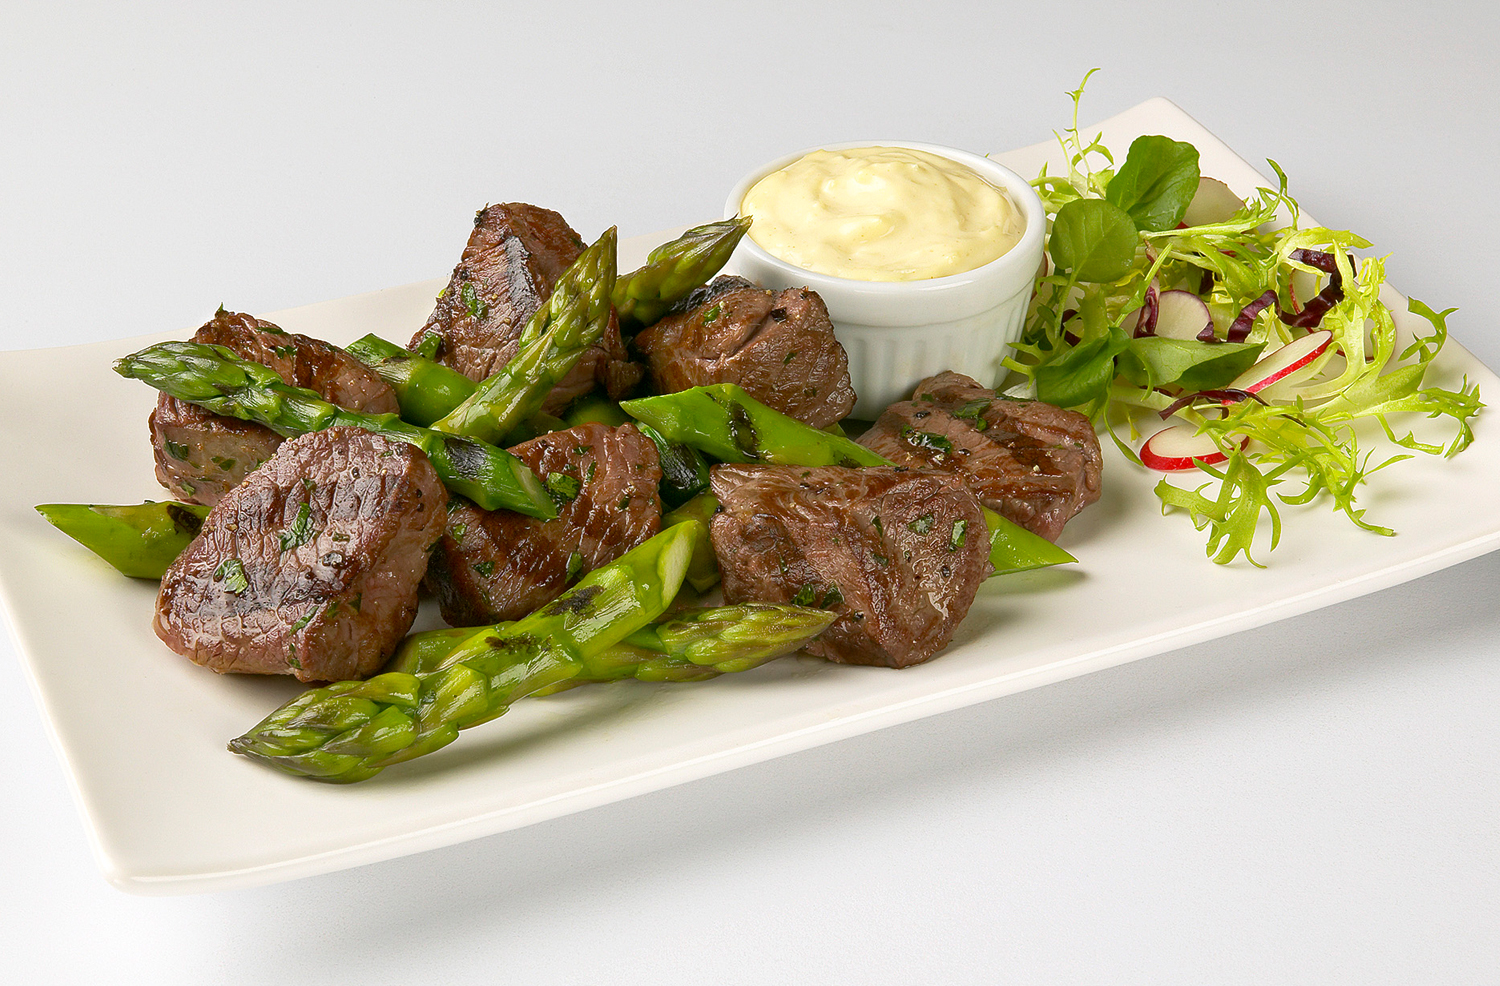 Lamb and Asparagus Mustard Aioli